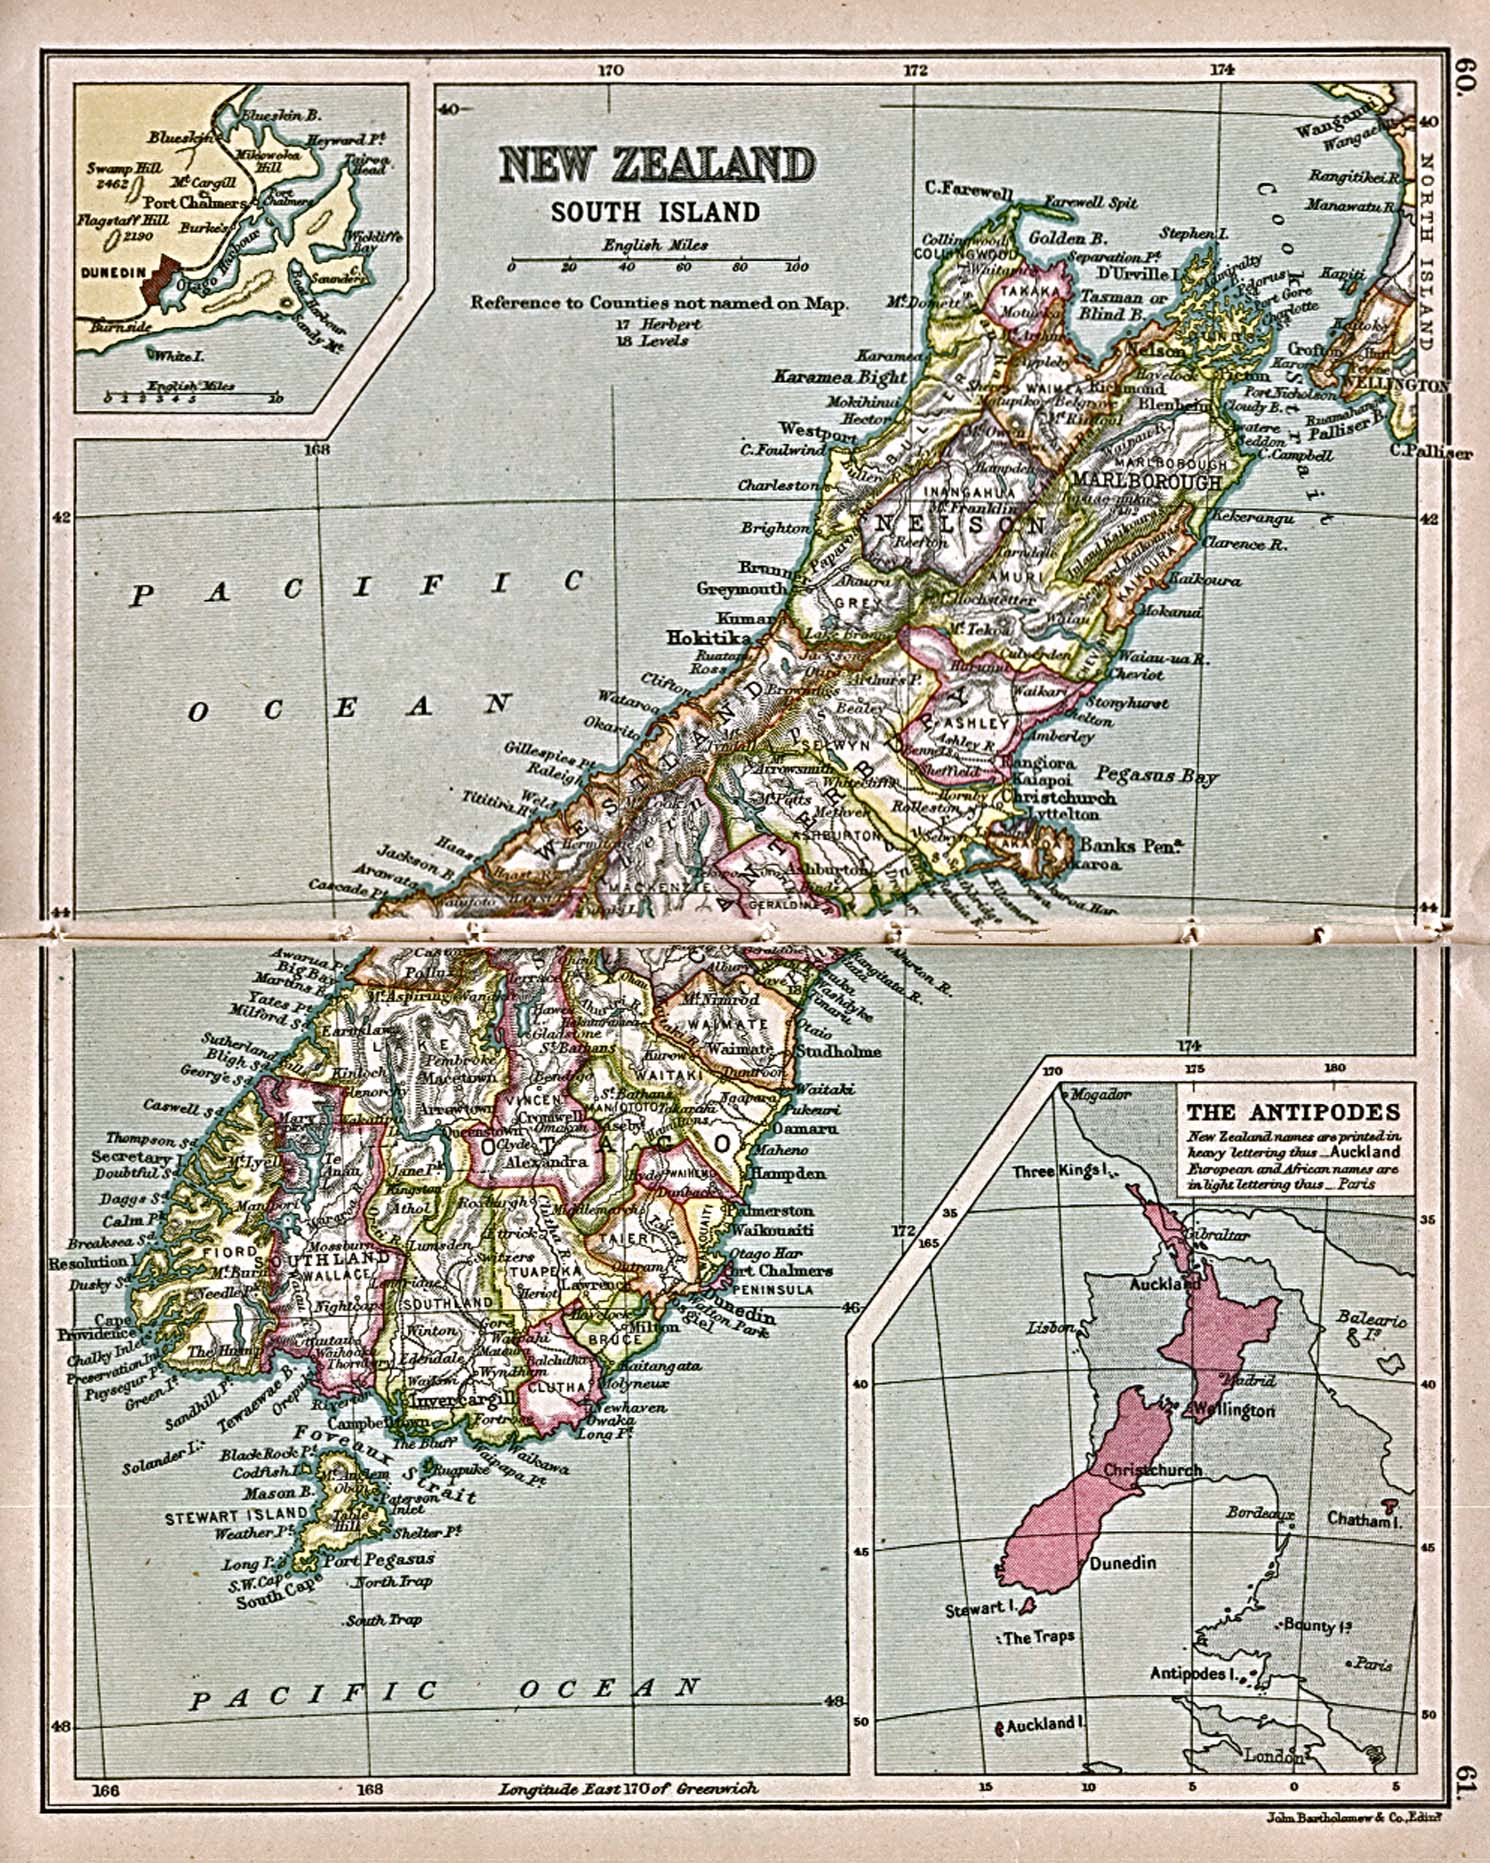 Reisenett historical maps of australia and the pacific new zealand south island 1913 sciox Gallery